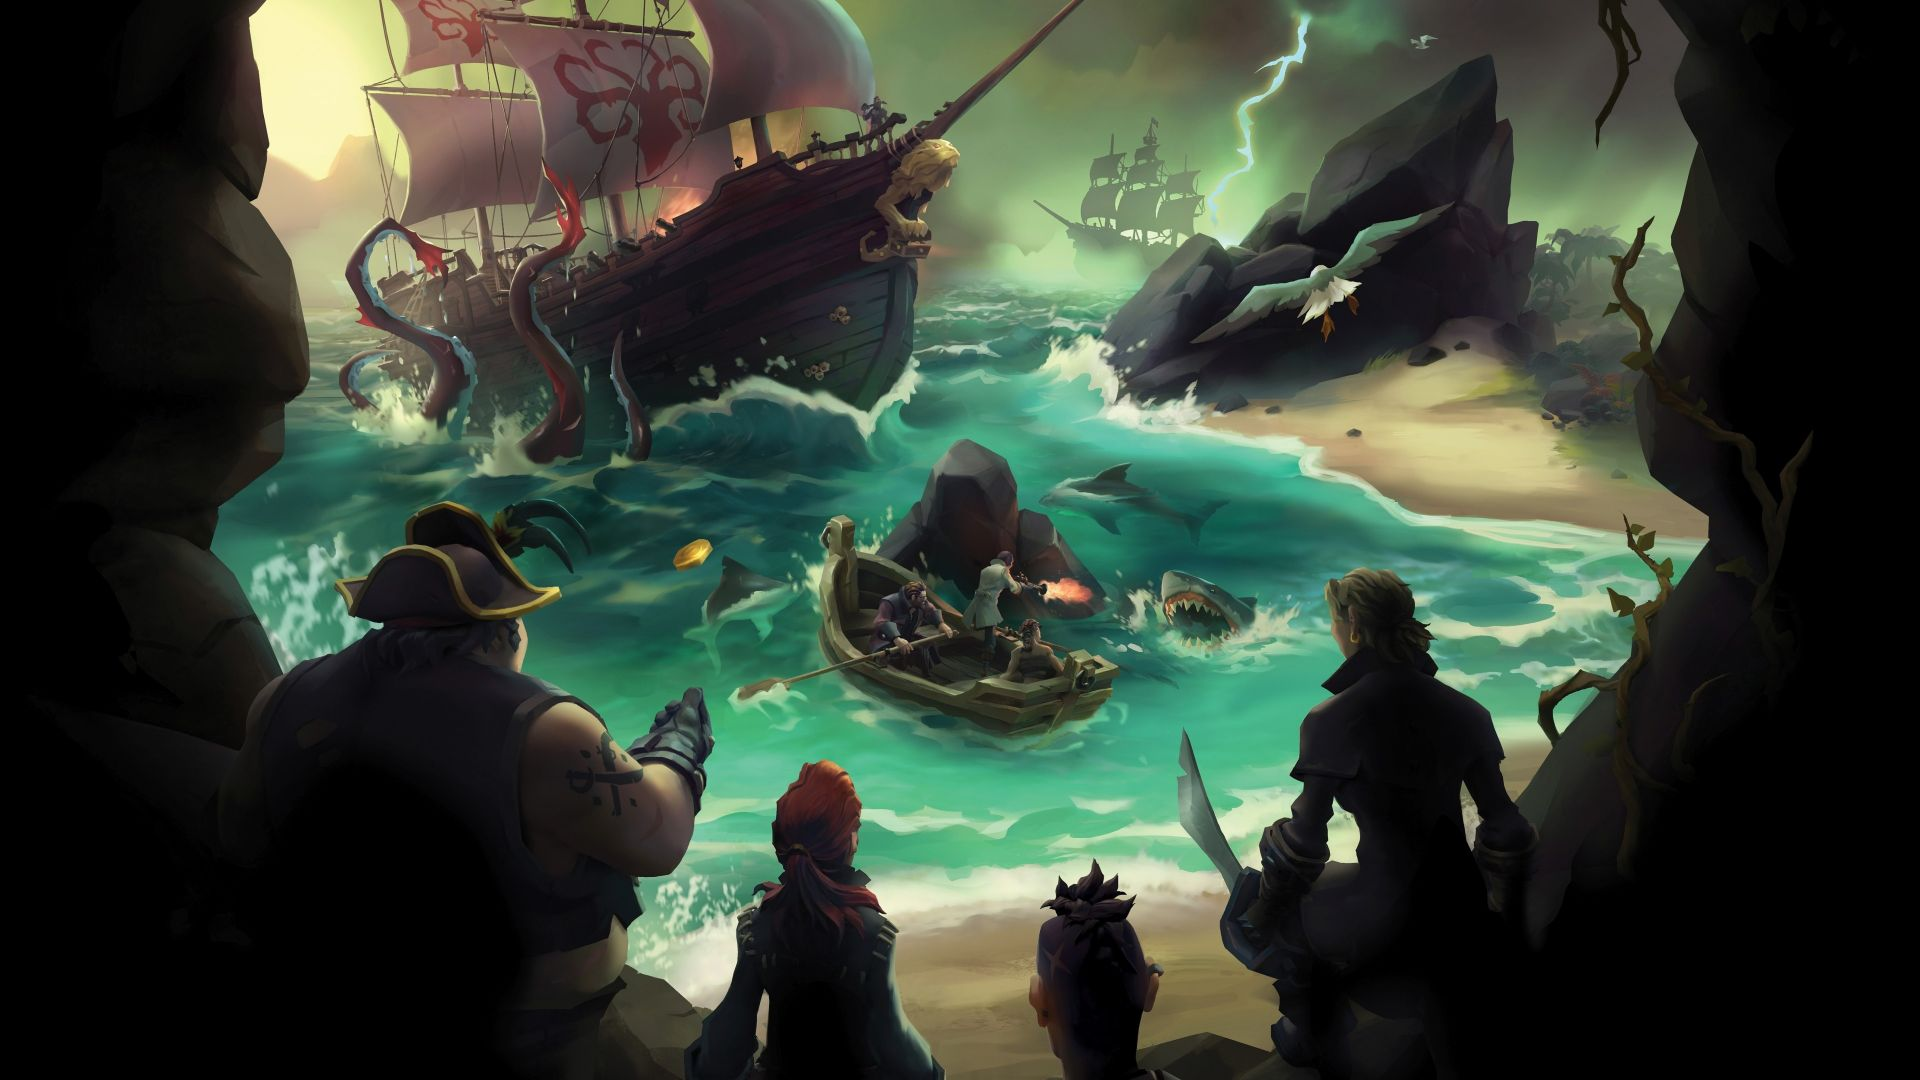 Sea of Thieves, Gamescom 2016, pirates, best games, pc, ps4, xbox one (horizontal)